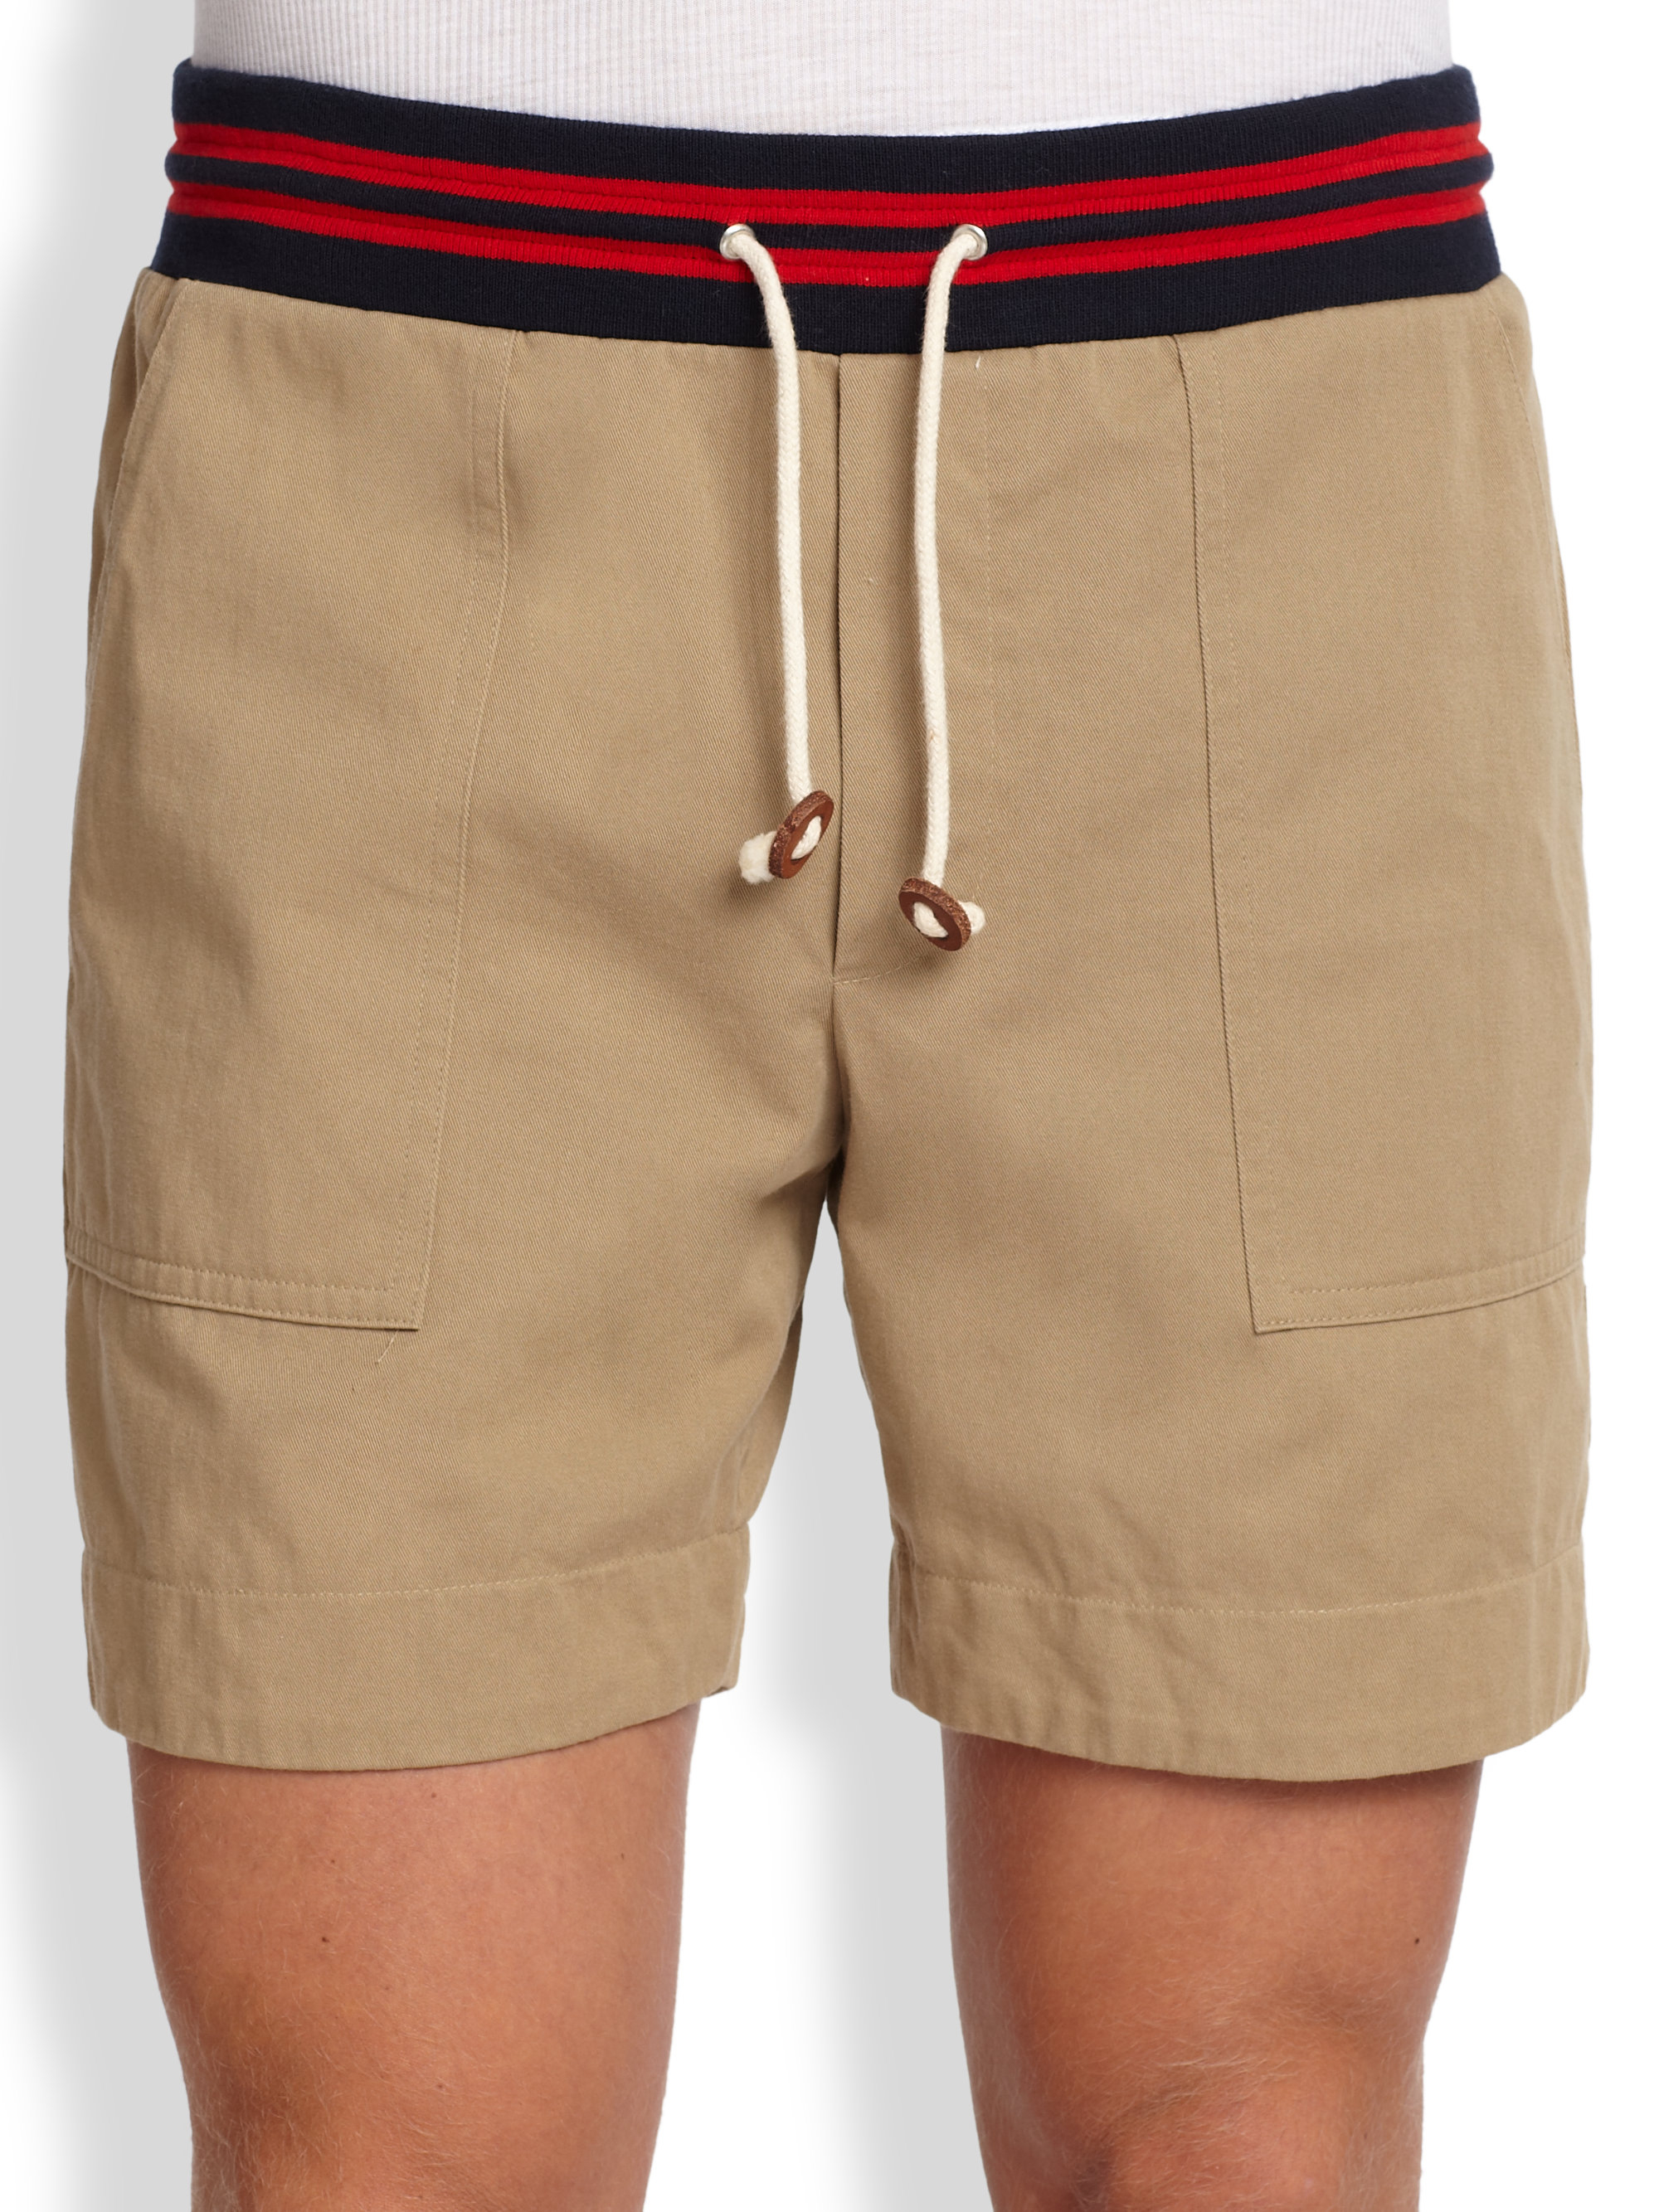 Band of outsiders Drawstring Chino Shorts in Natural for Men | Lyst